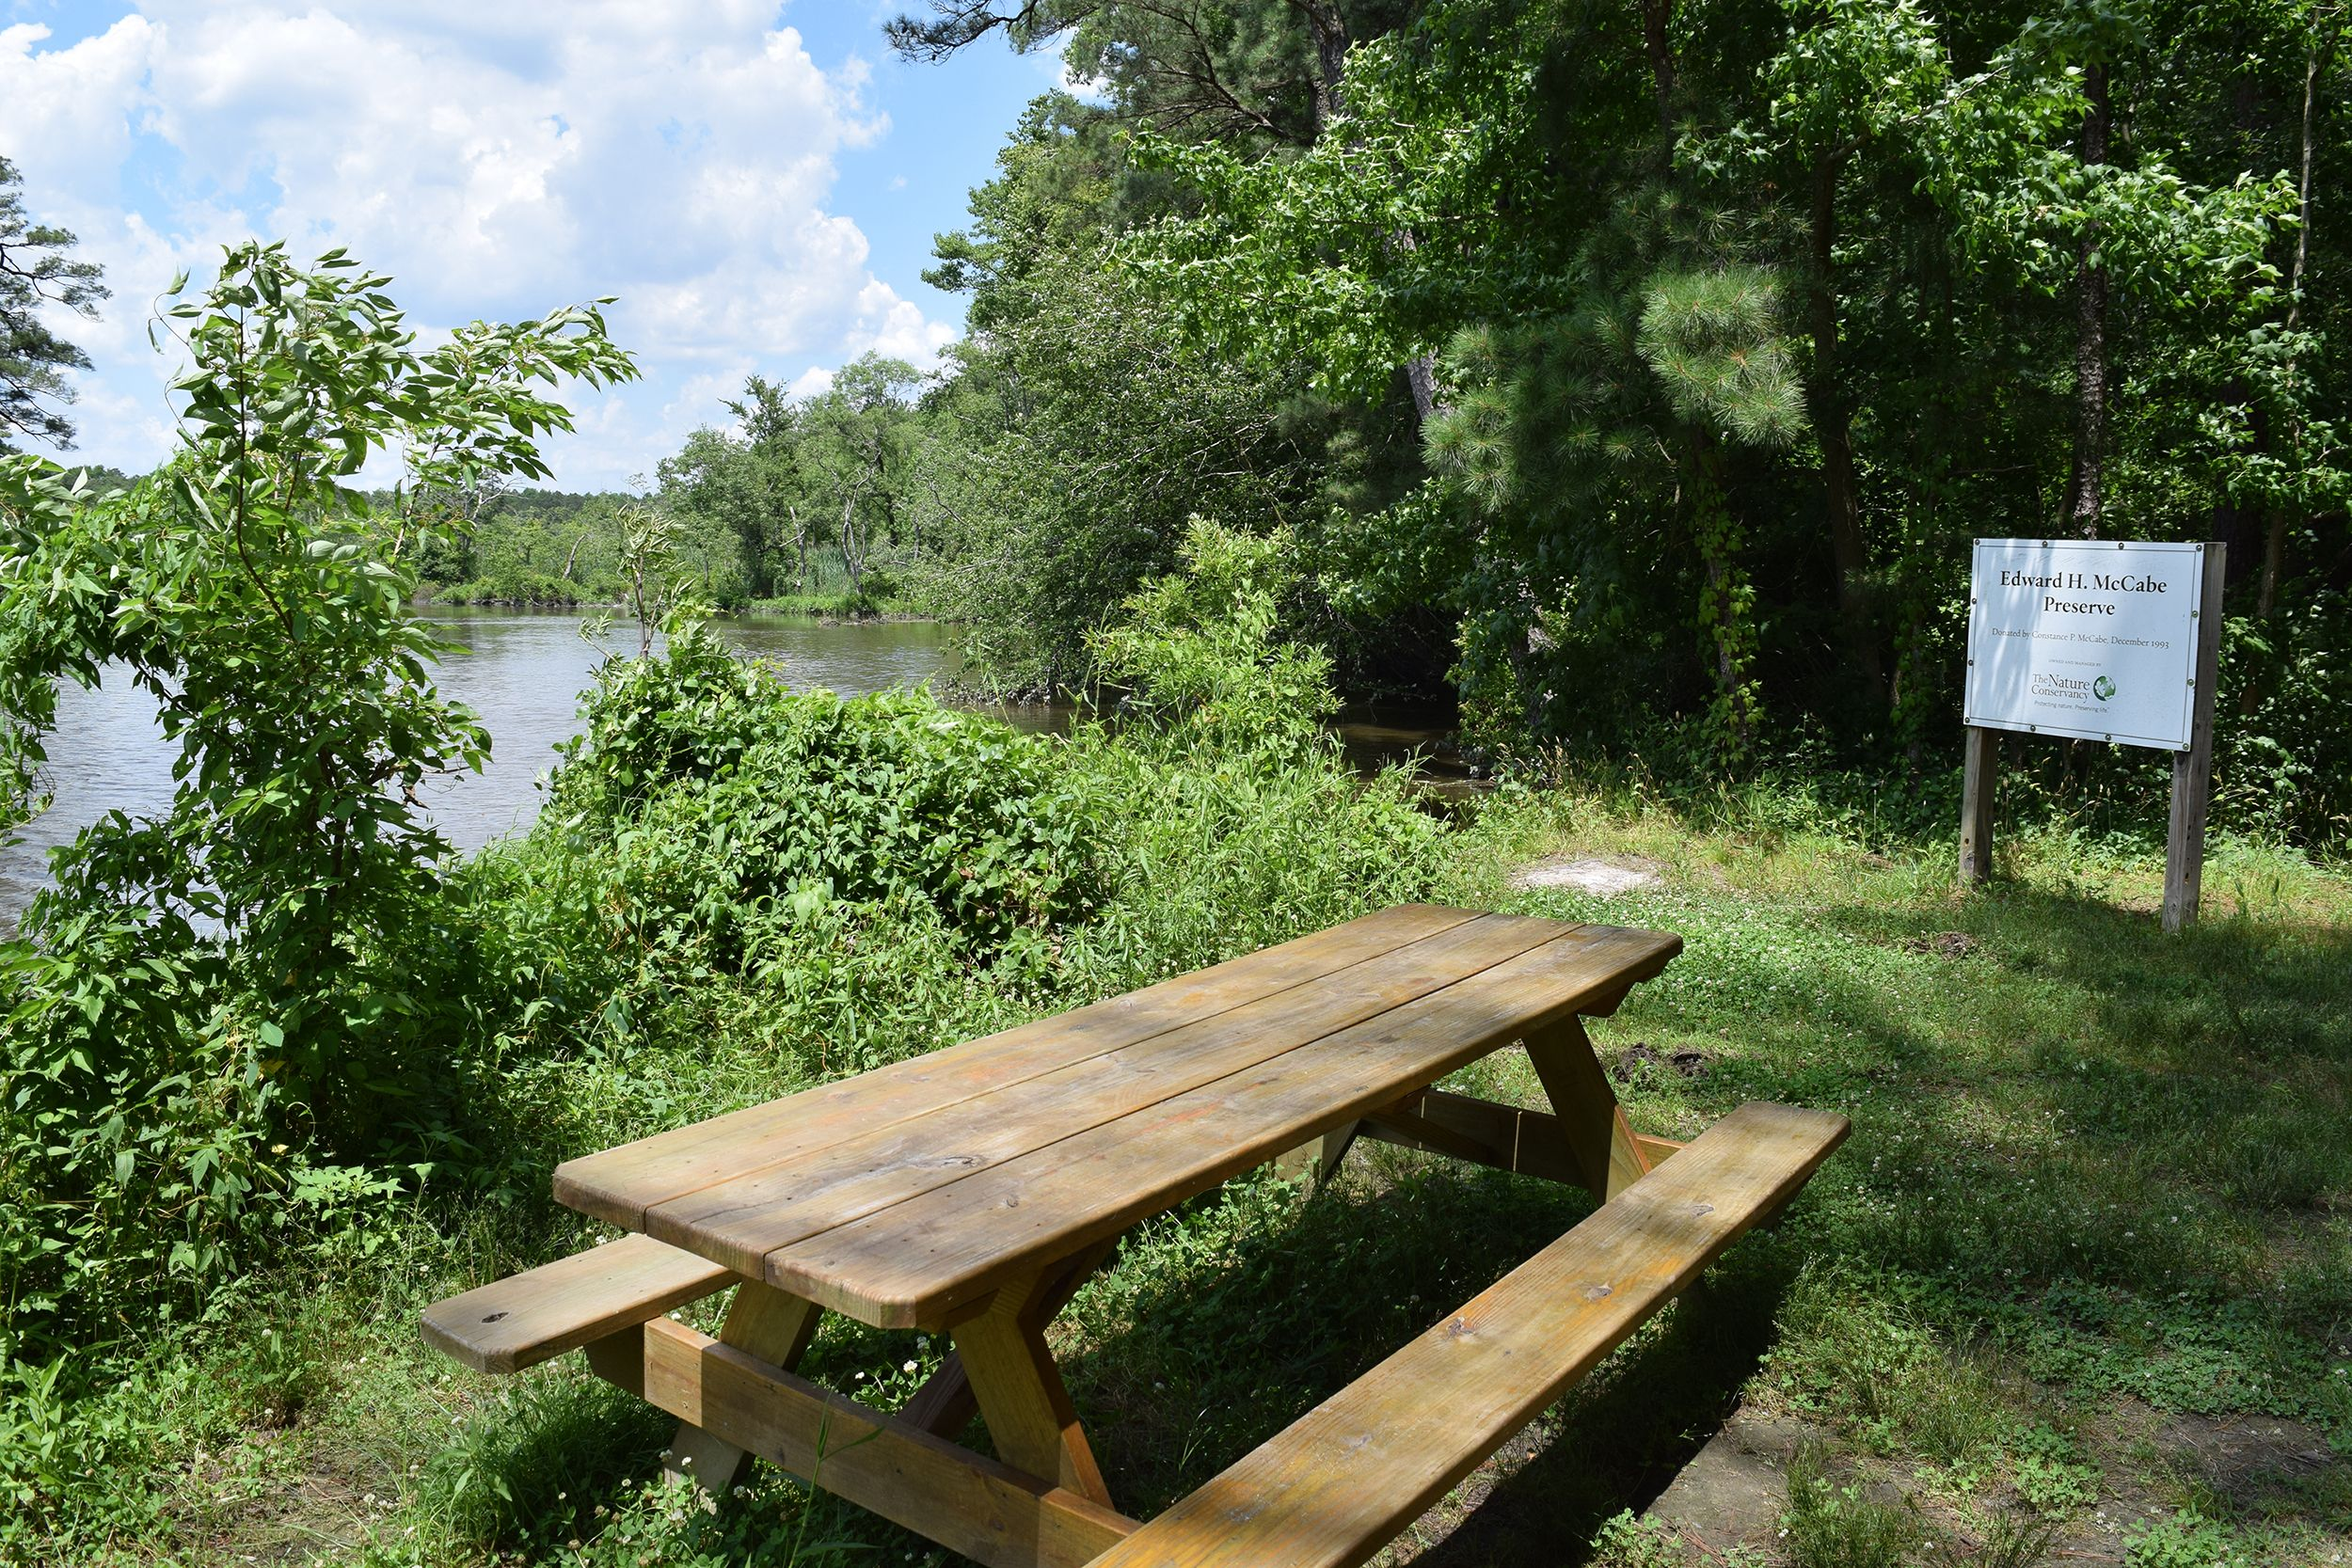 A wooden picnic table sits next to a wide river. The table is shaded by the tall trees that grow along the river bank. A sign in the background reads, Edward H. McCabe Preserve.